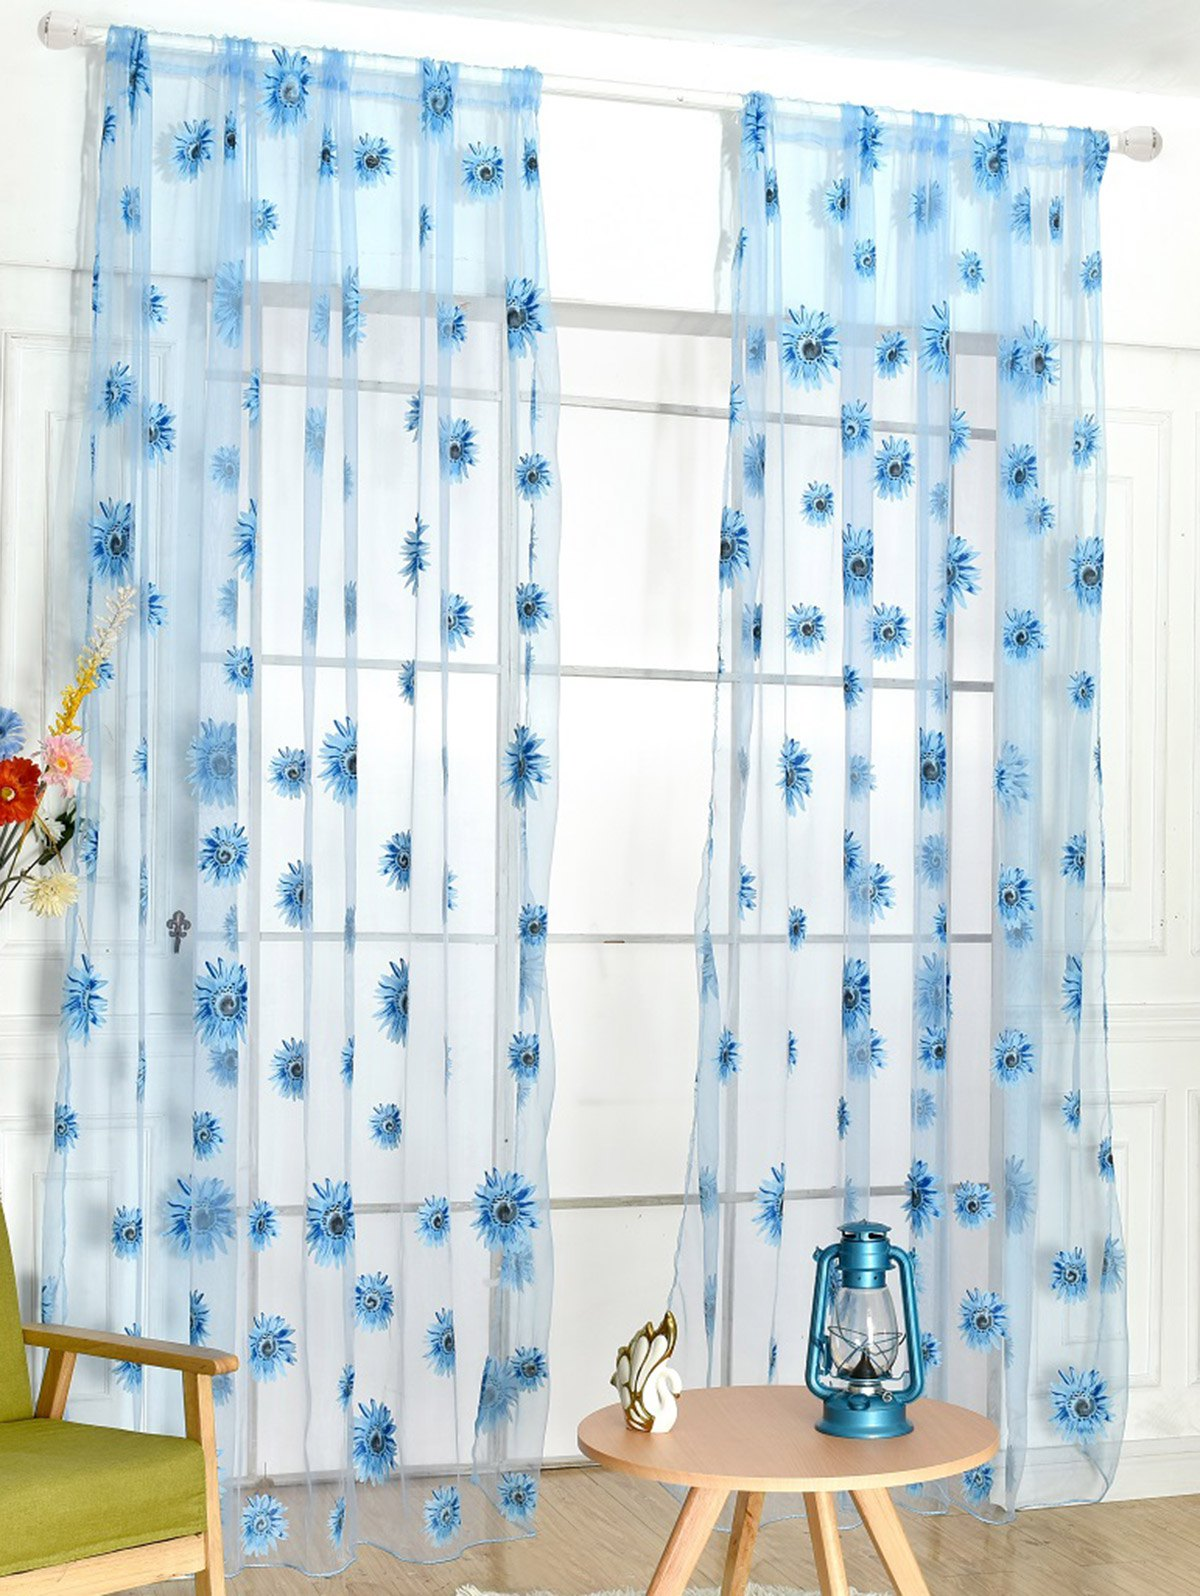 Sunflower Embroidery Tulle Curtain For Room Decor - LAKE BLUE 100*200CM